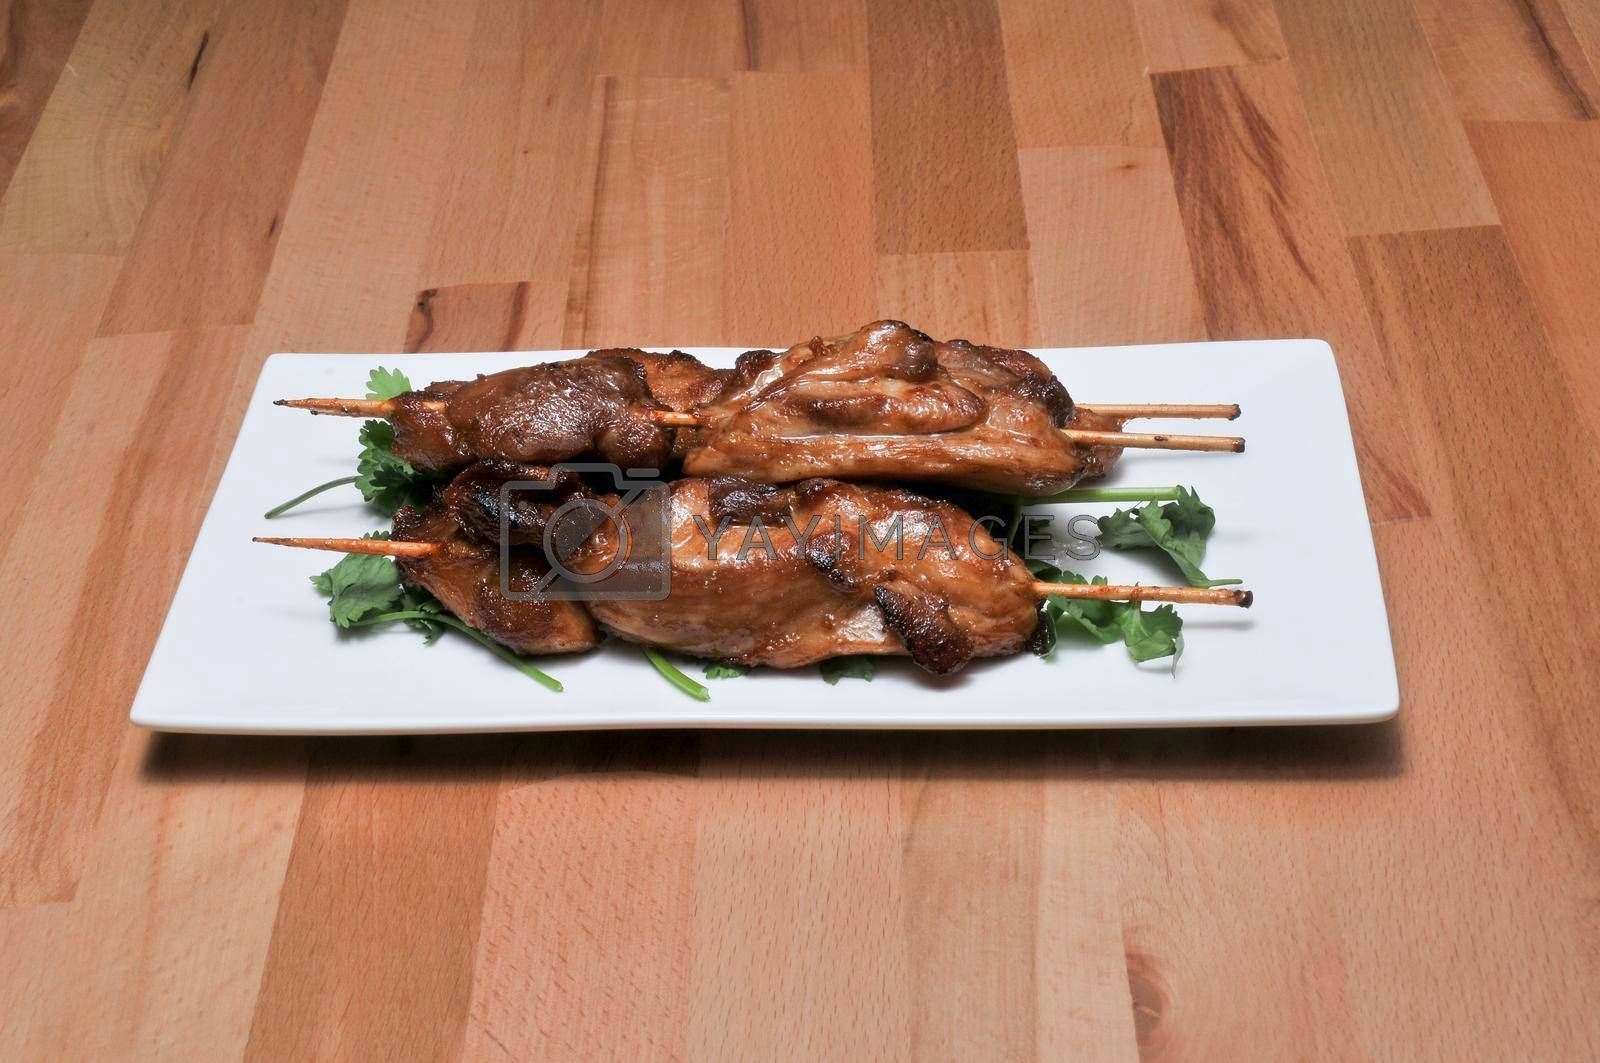 Delicious Chinese food known as chicken skewers